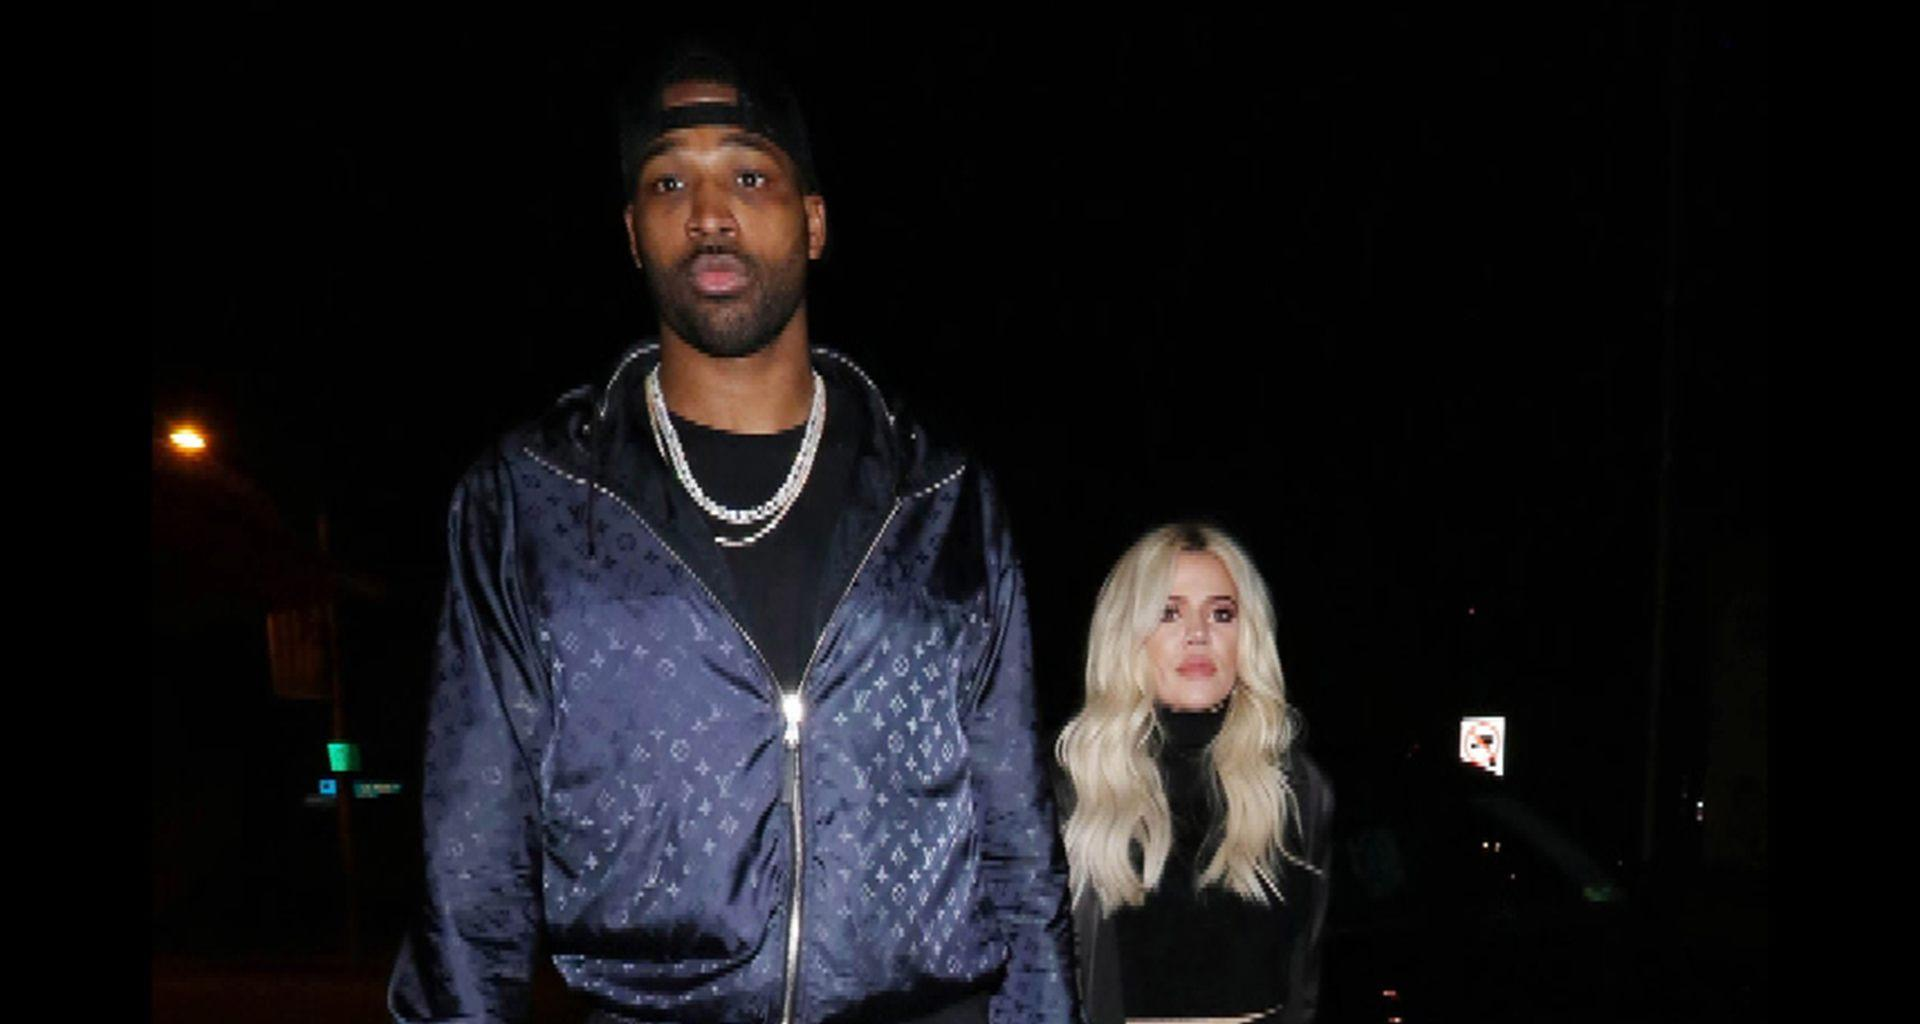 KUWK: Khloe Kardashian - Does She Still Want Tristan Thompson In True's Life After His Cheating Scandal?